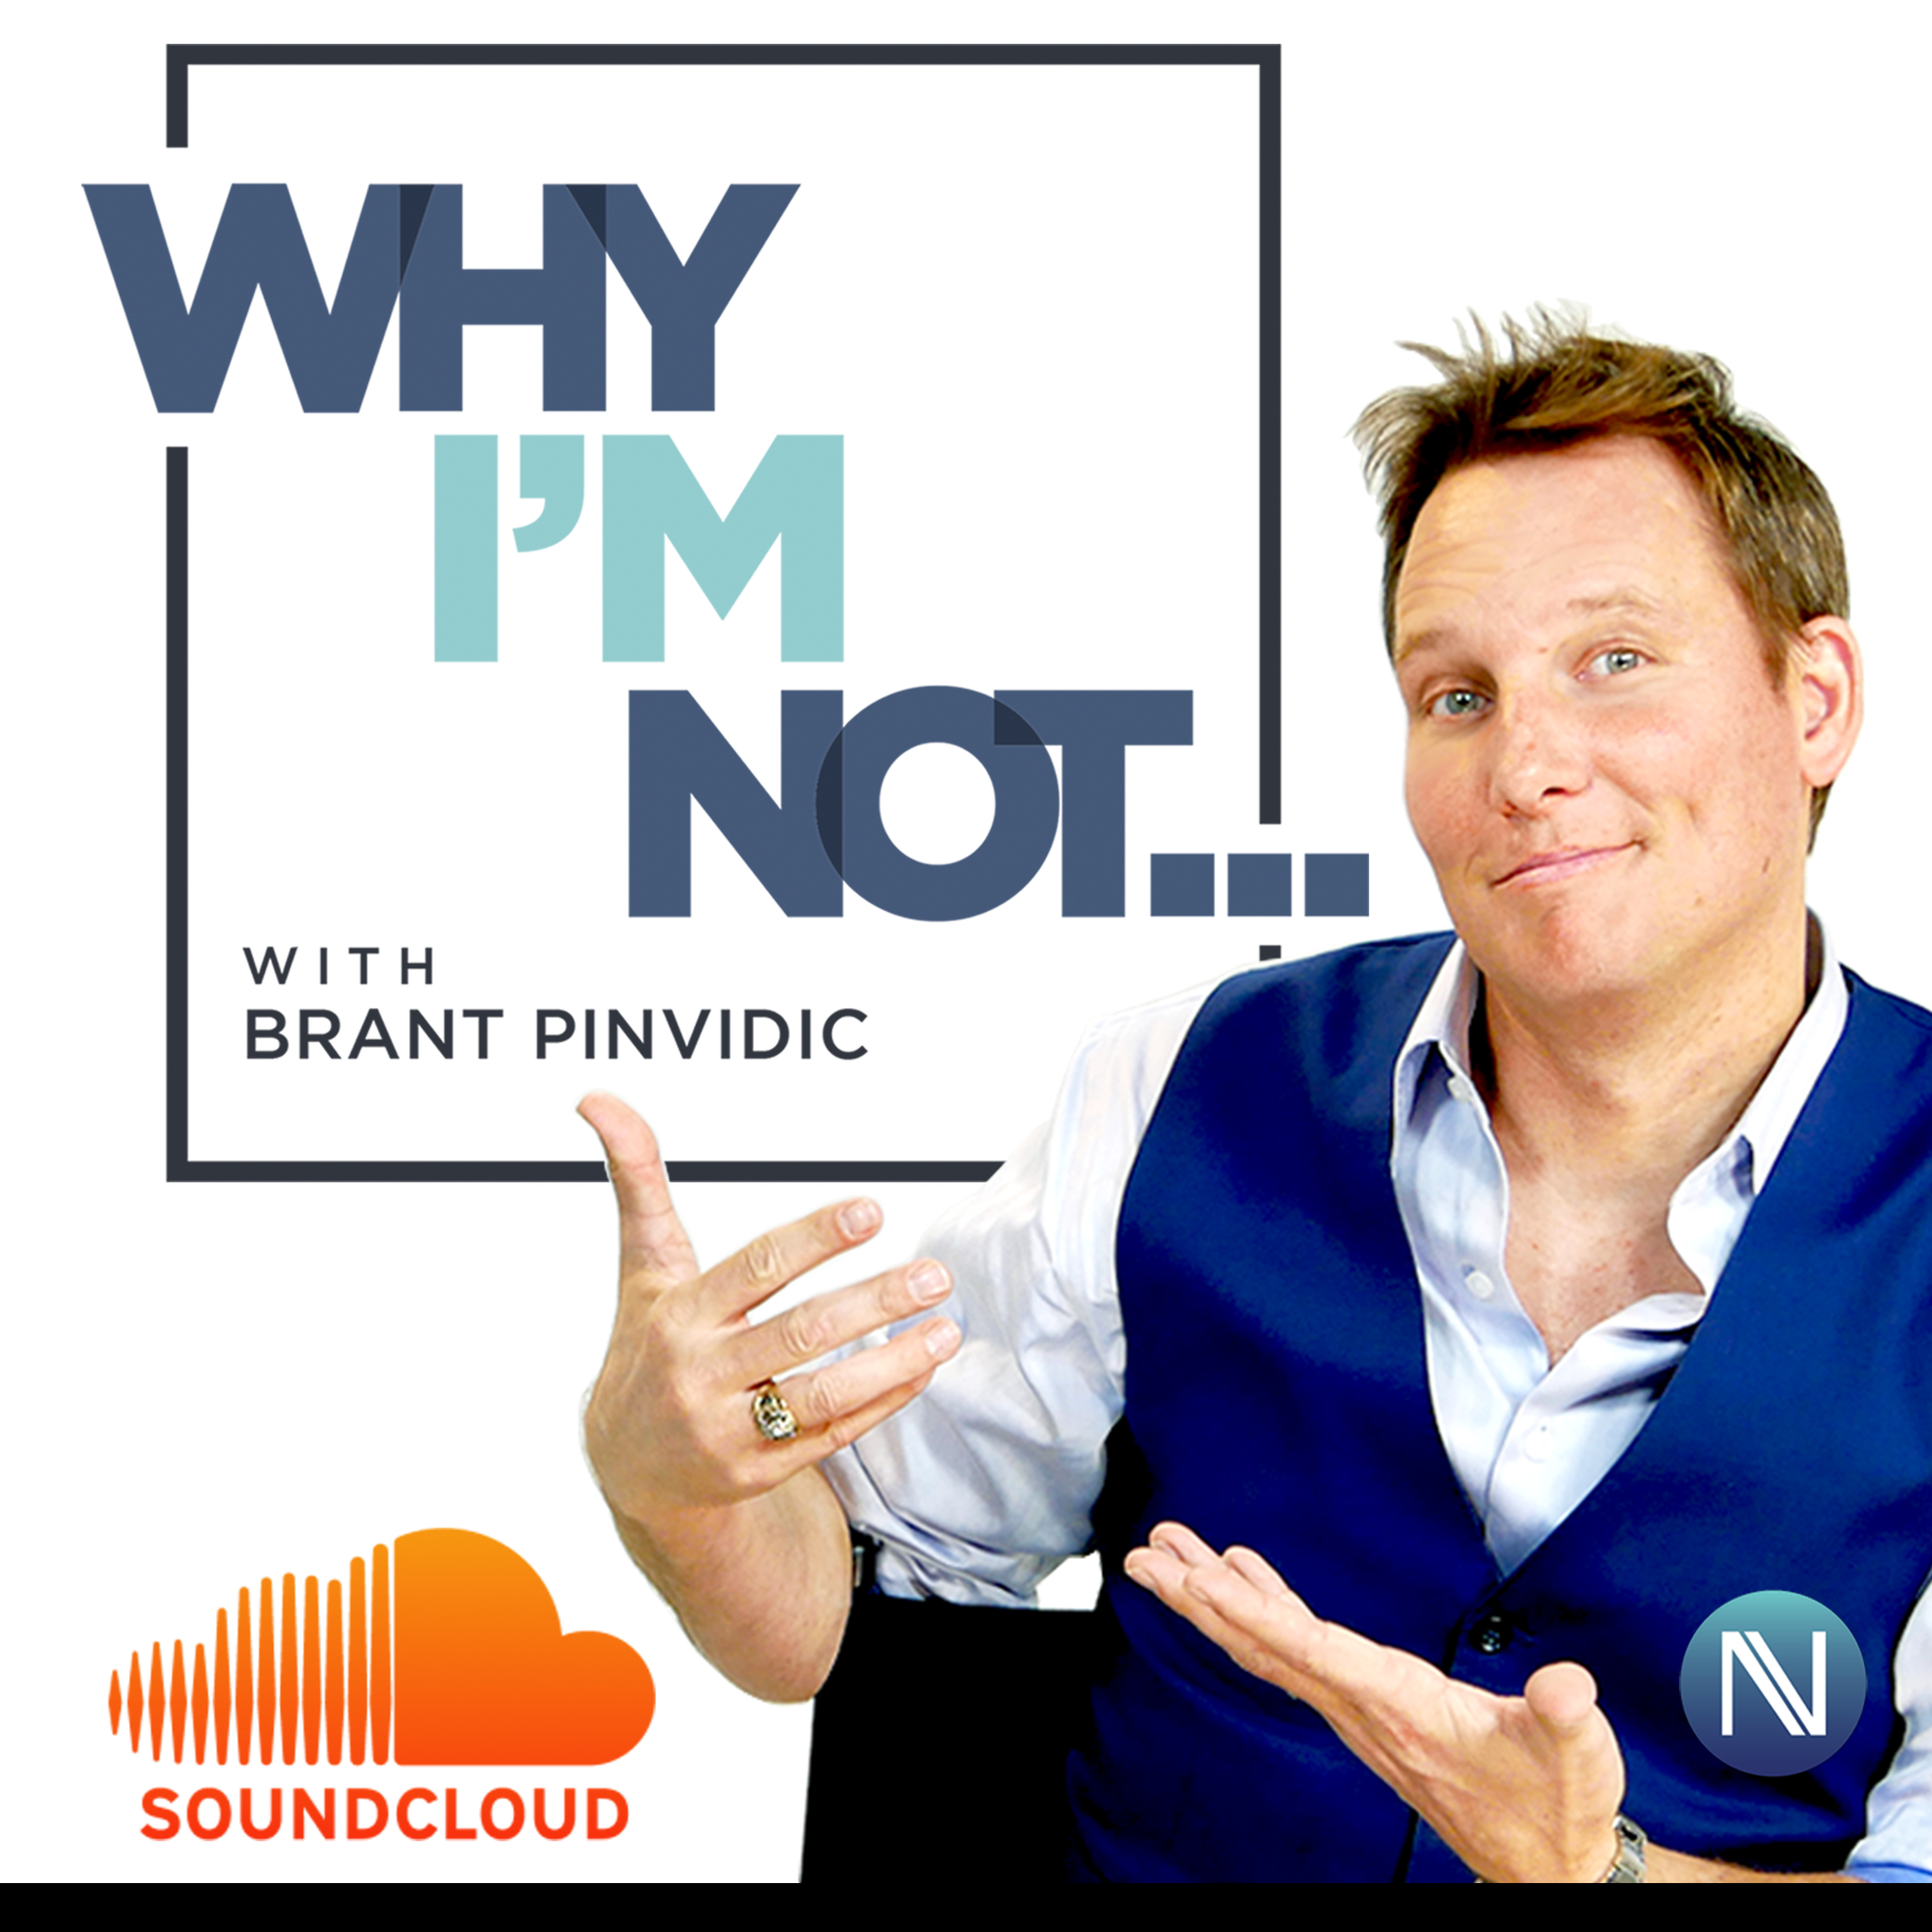 Why I'm Not... with Brant Pinvidic